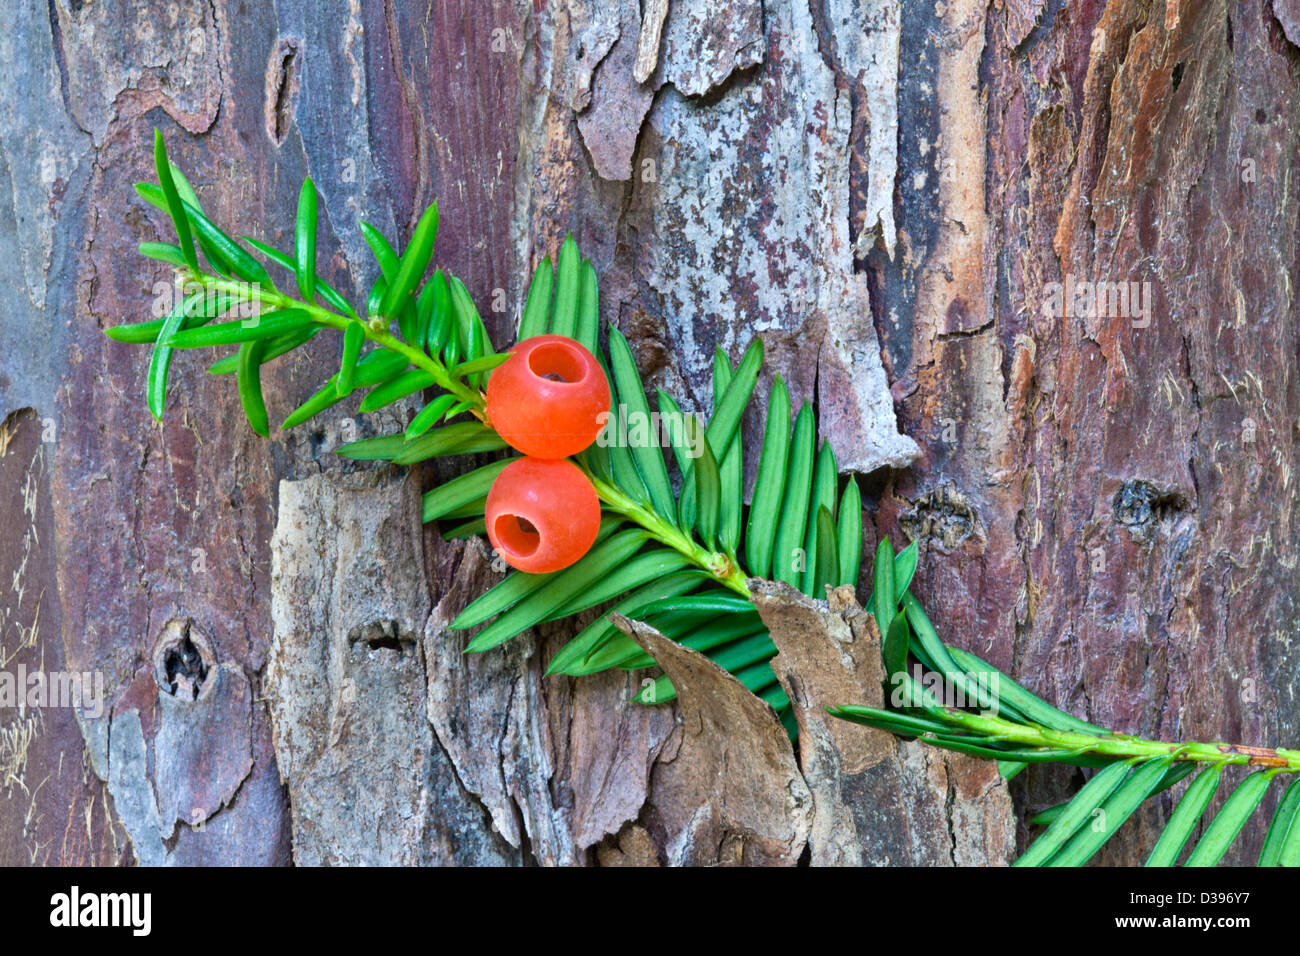 """Pacific Yew tree, Elliptical seeds 1/4"""" long, enclosed in scarlet cups. Stock Photo"""